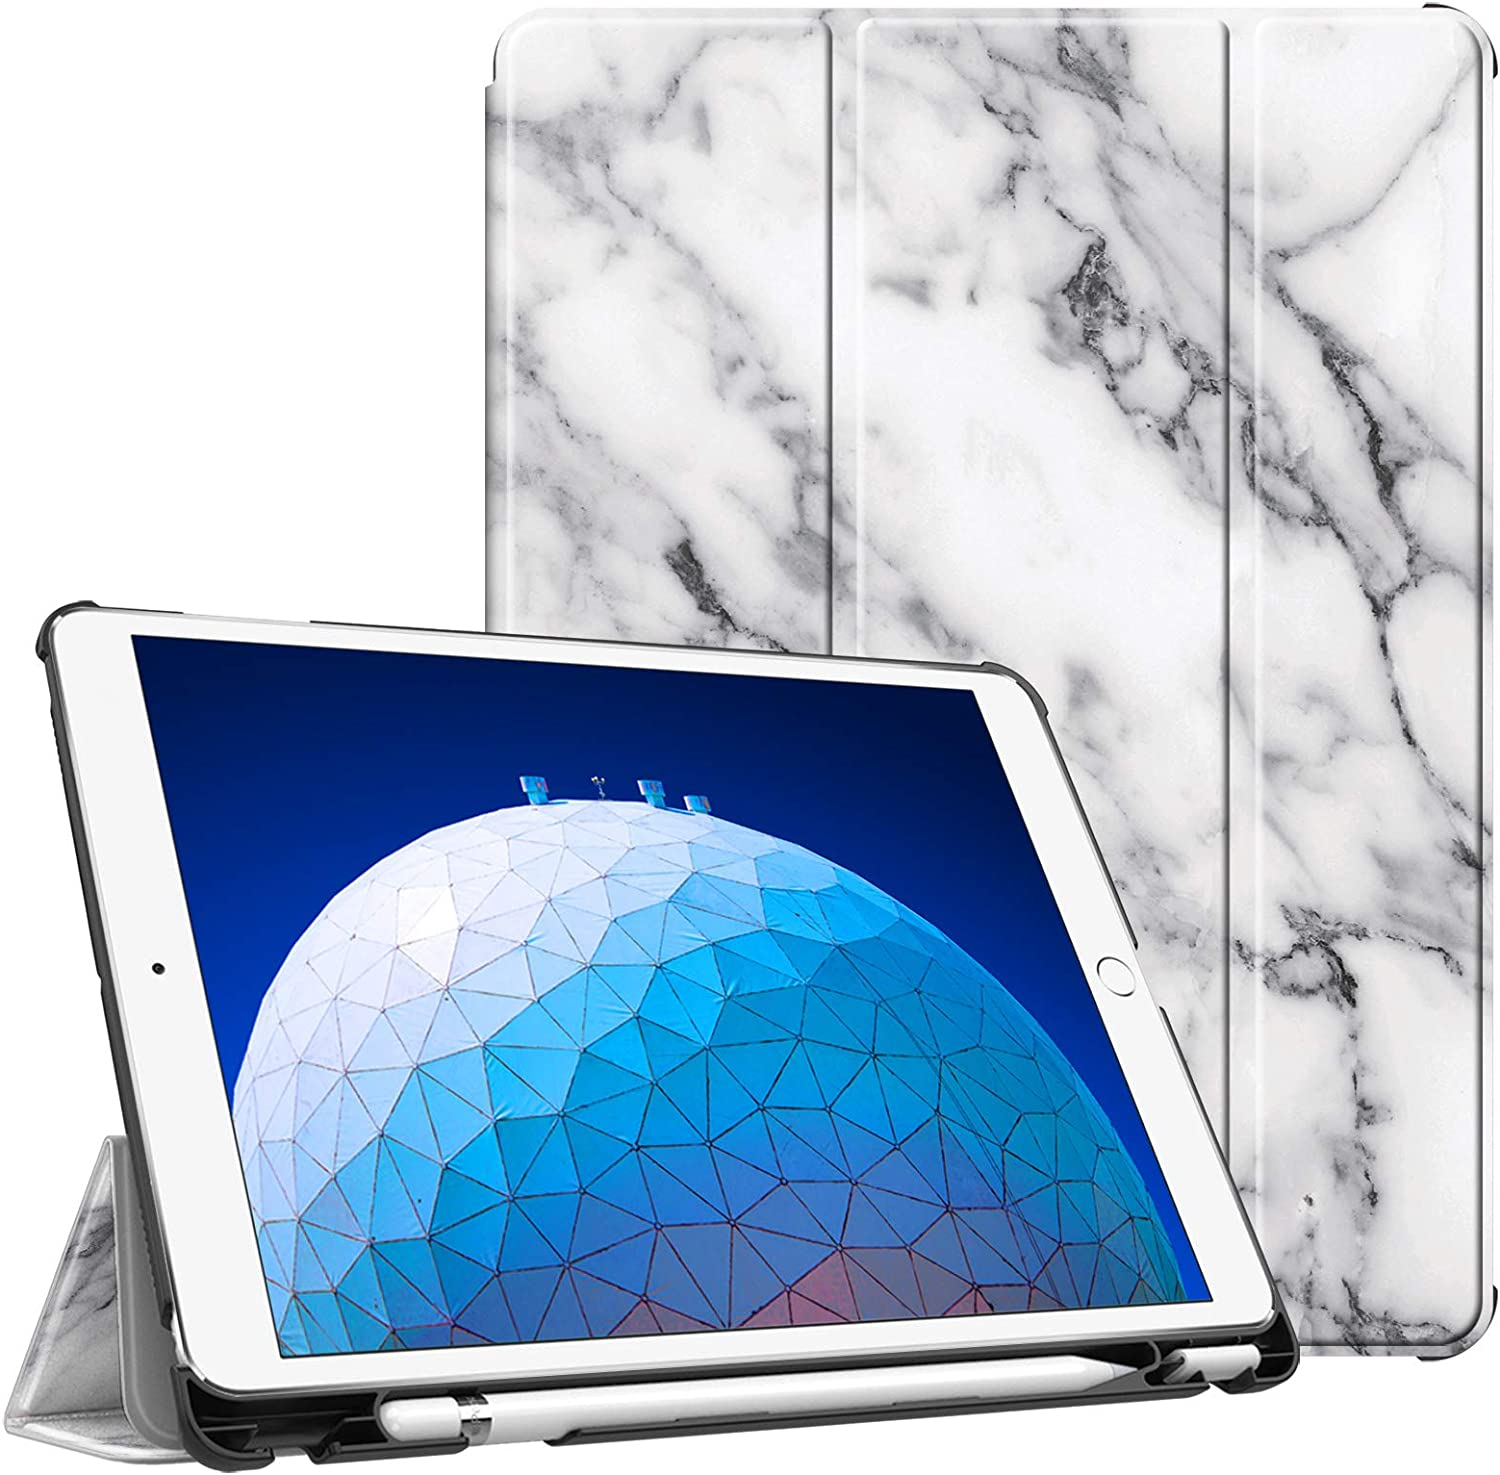 """Fintie Case for iPad Air (3rd Gen) 10.5"""" 2019 / iPad Pro 10.5"""" 2017 - [SlimShell] Ultra Lightweight Standing Protective Cover with Built-in Pencil Holder, Auto Wake/Sleep (Marble White)"""